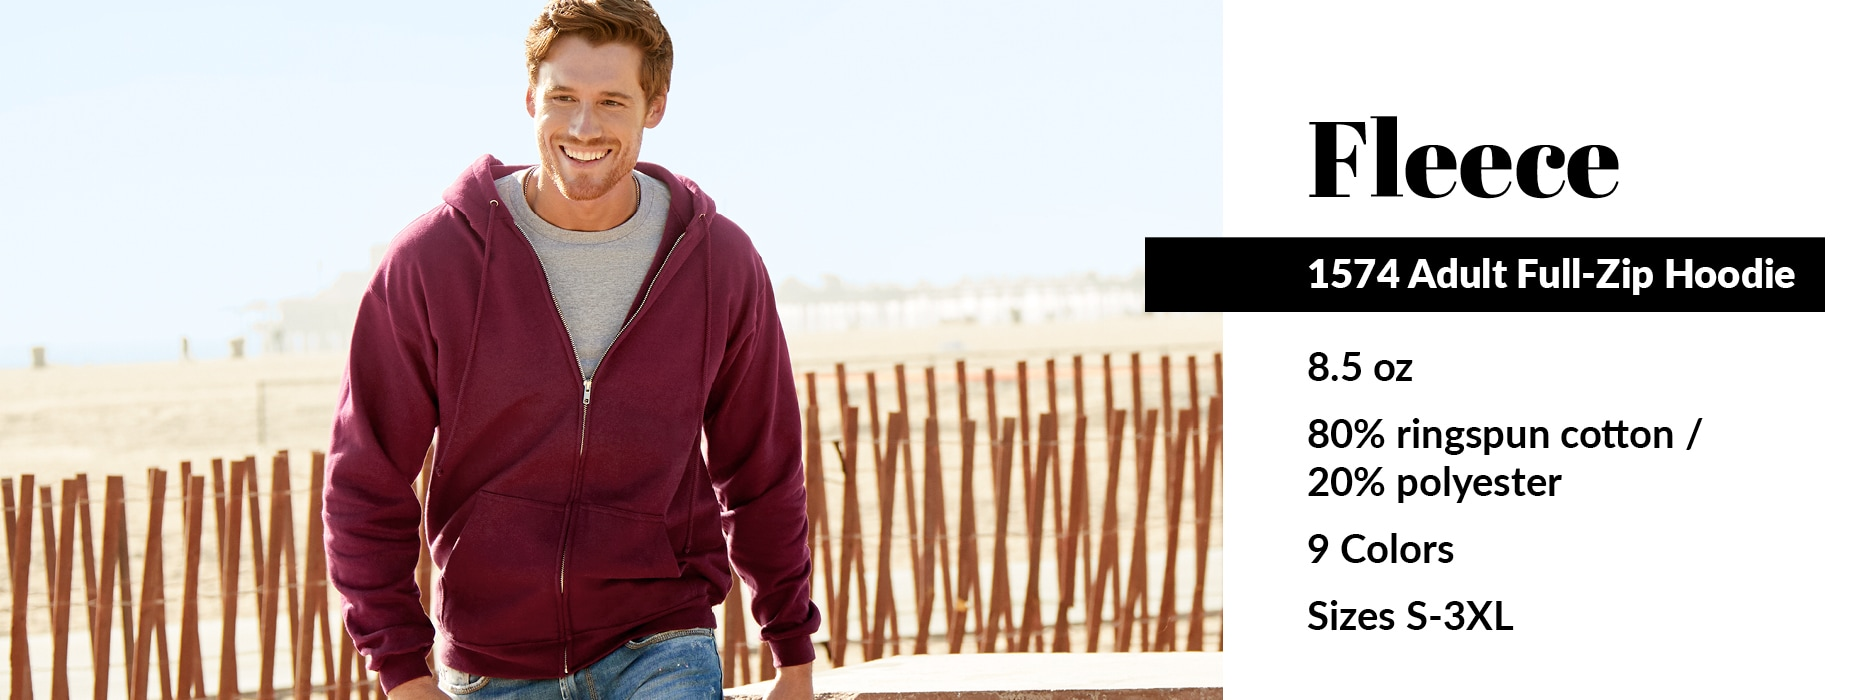 Shop now for our 1574 style, Adult Full-Zip Hoodie from Alstyle USA